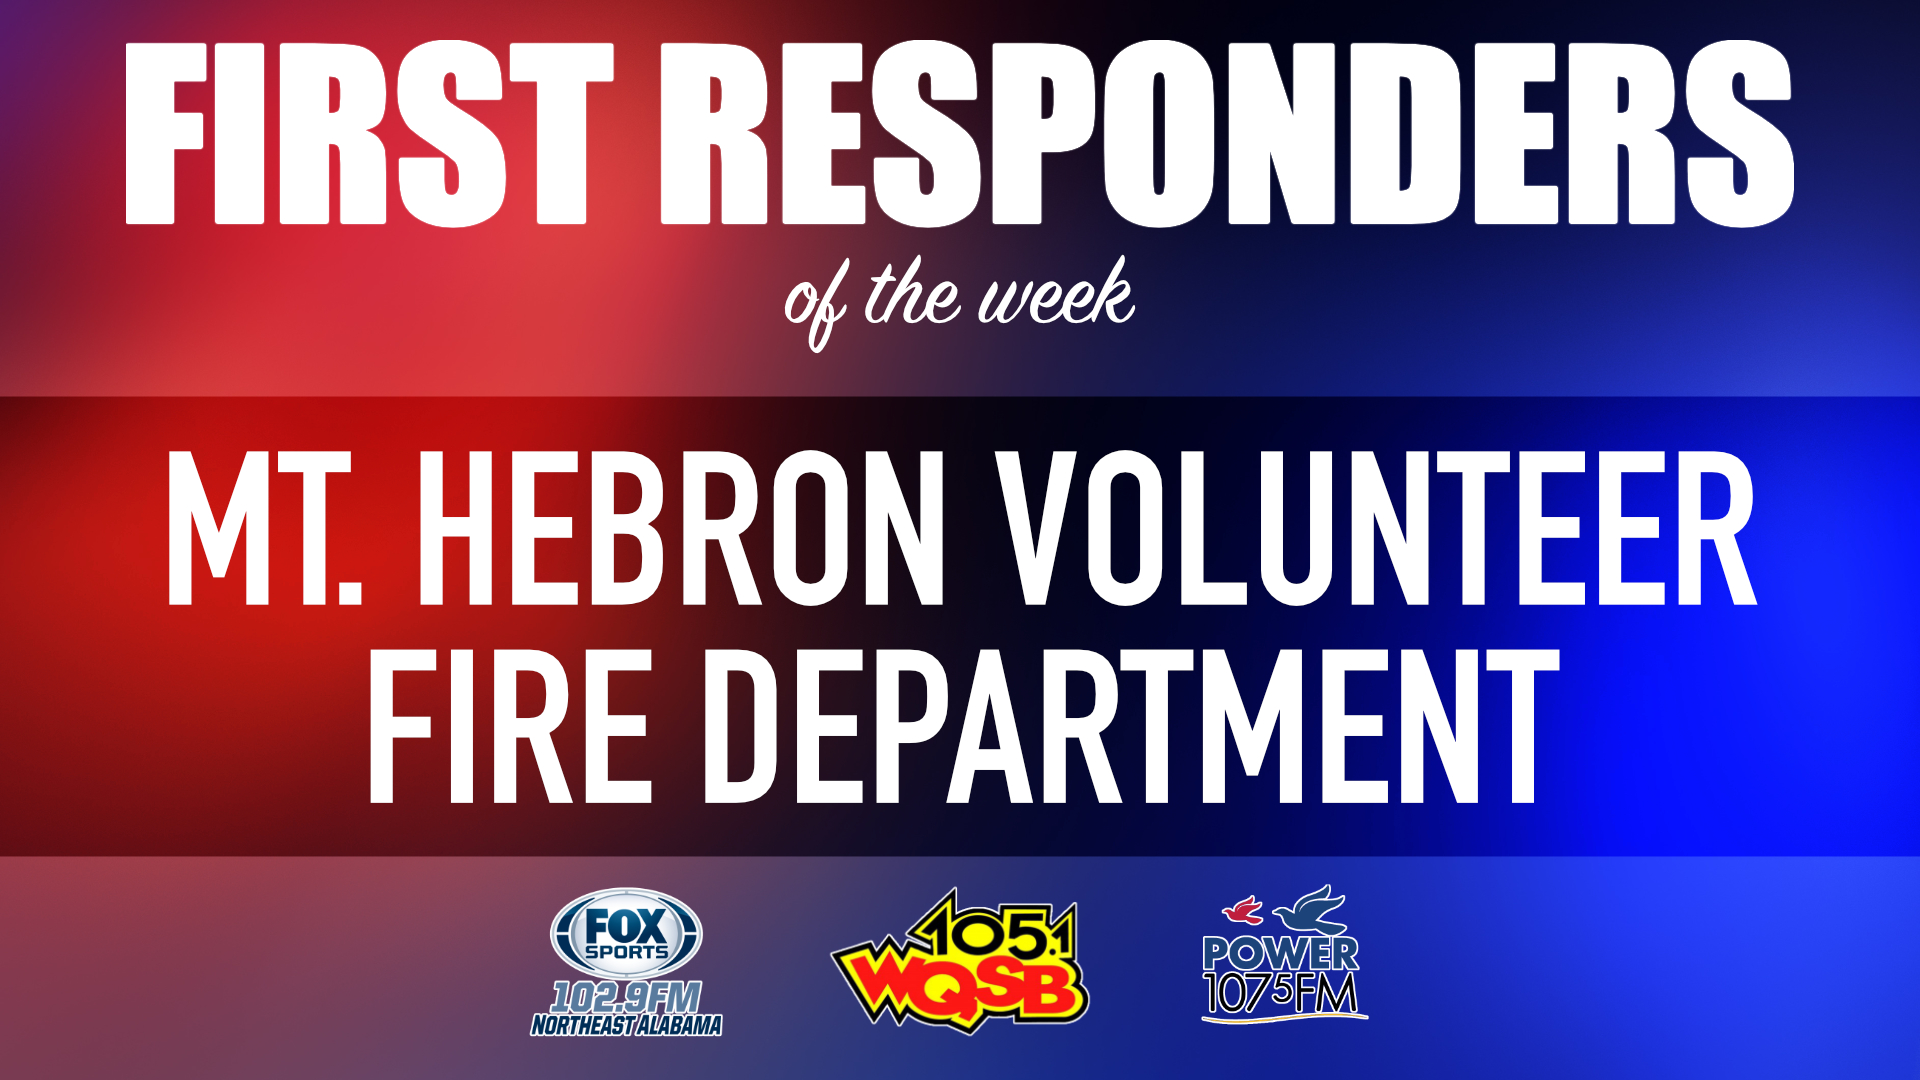 WQSB First Responders of the Week 2021 June 7th, 2021